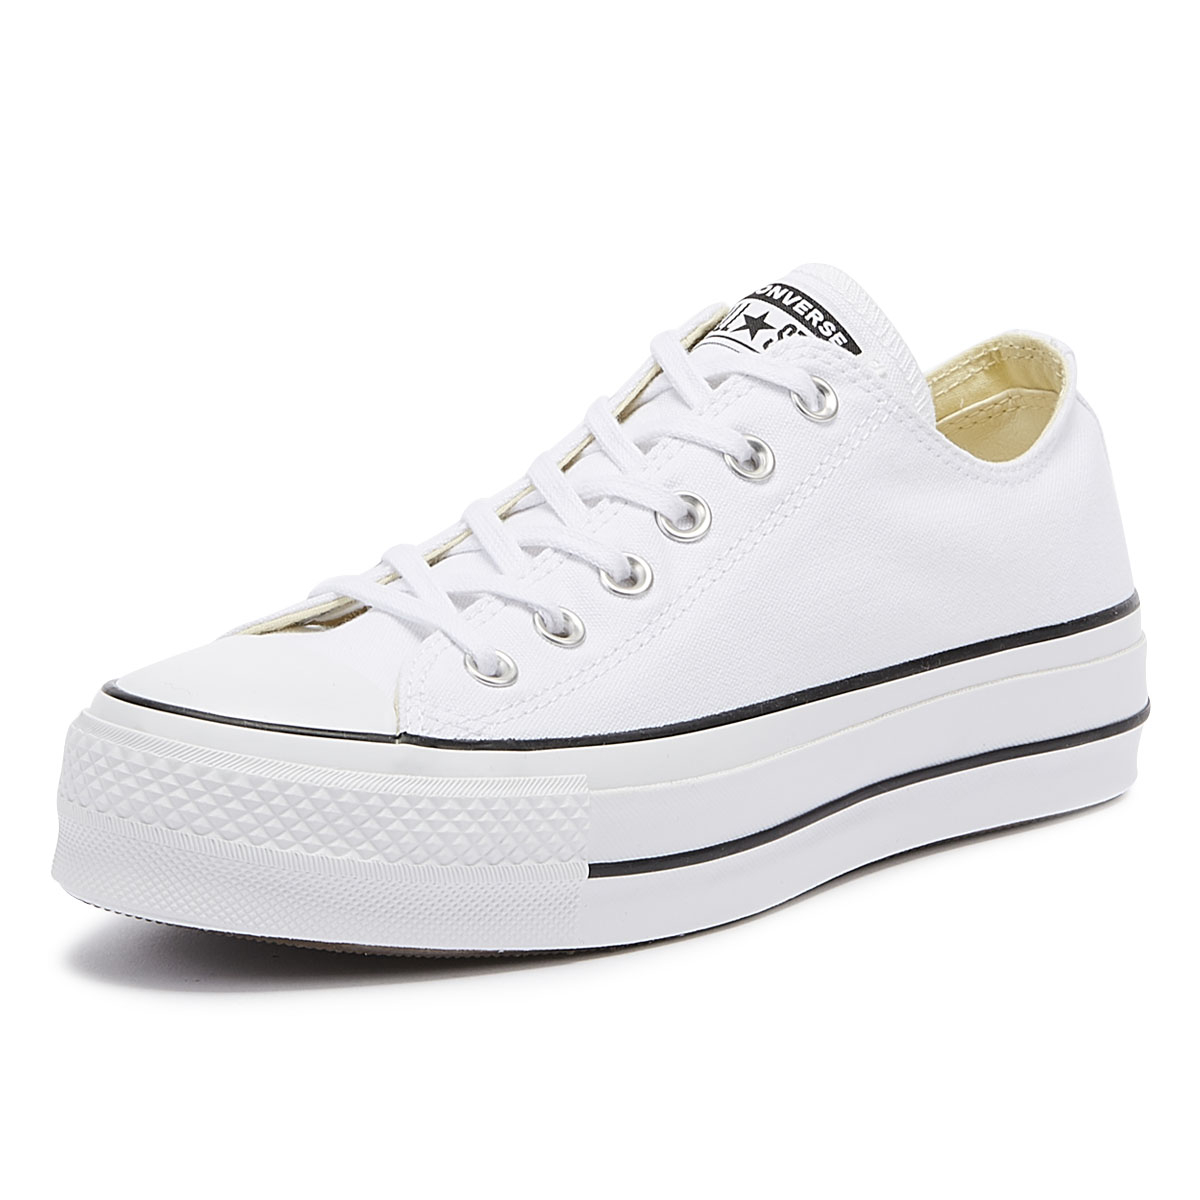 a091d5ab3415 Details about Converse Chuck Taylor All Star Lift Womens White Ox Trainers  Ladies Casual Shoes